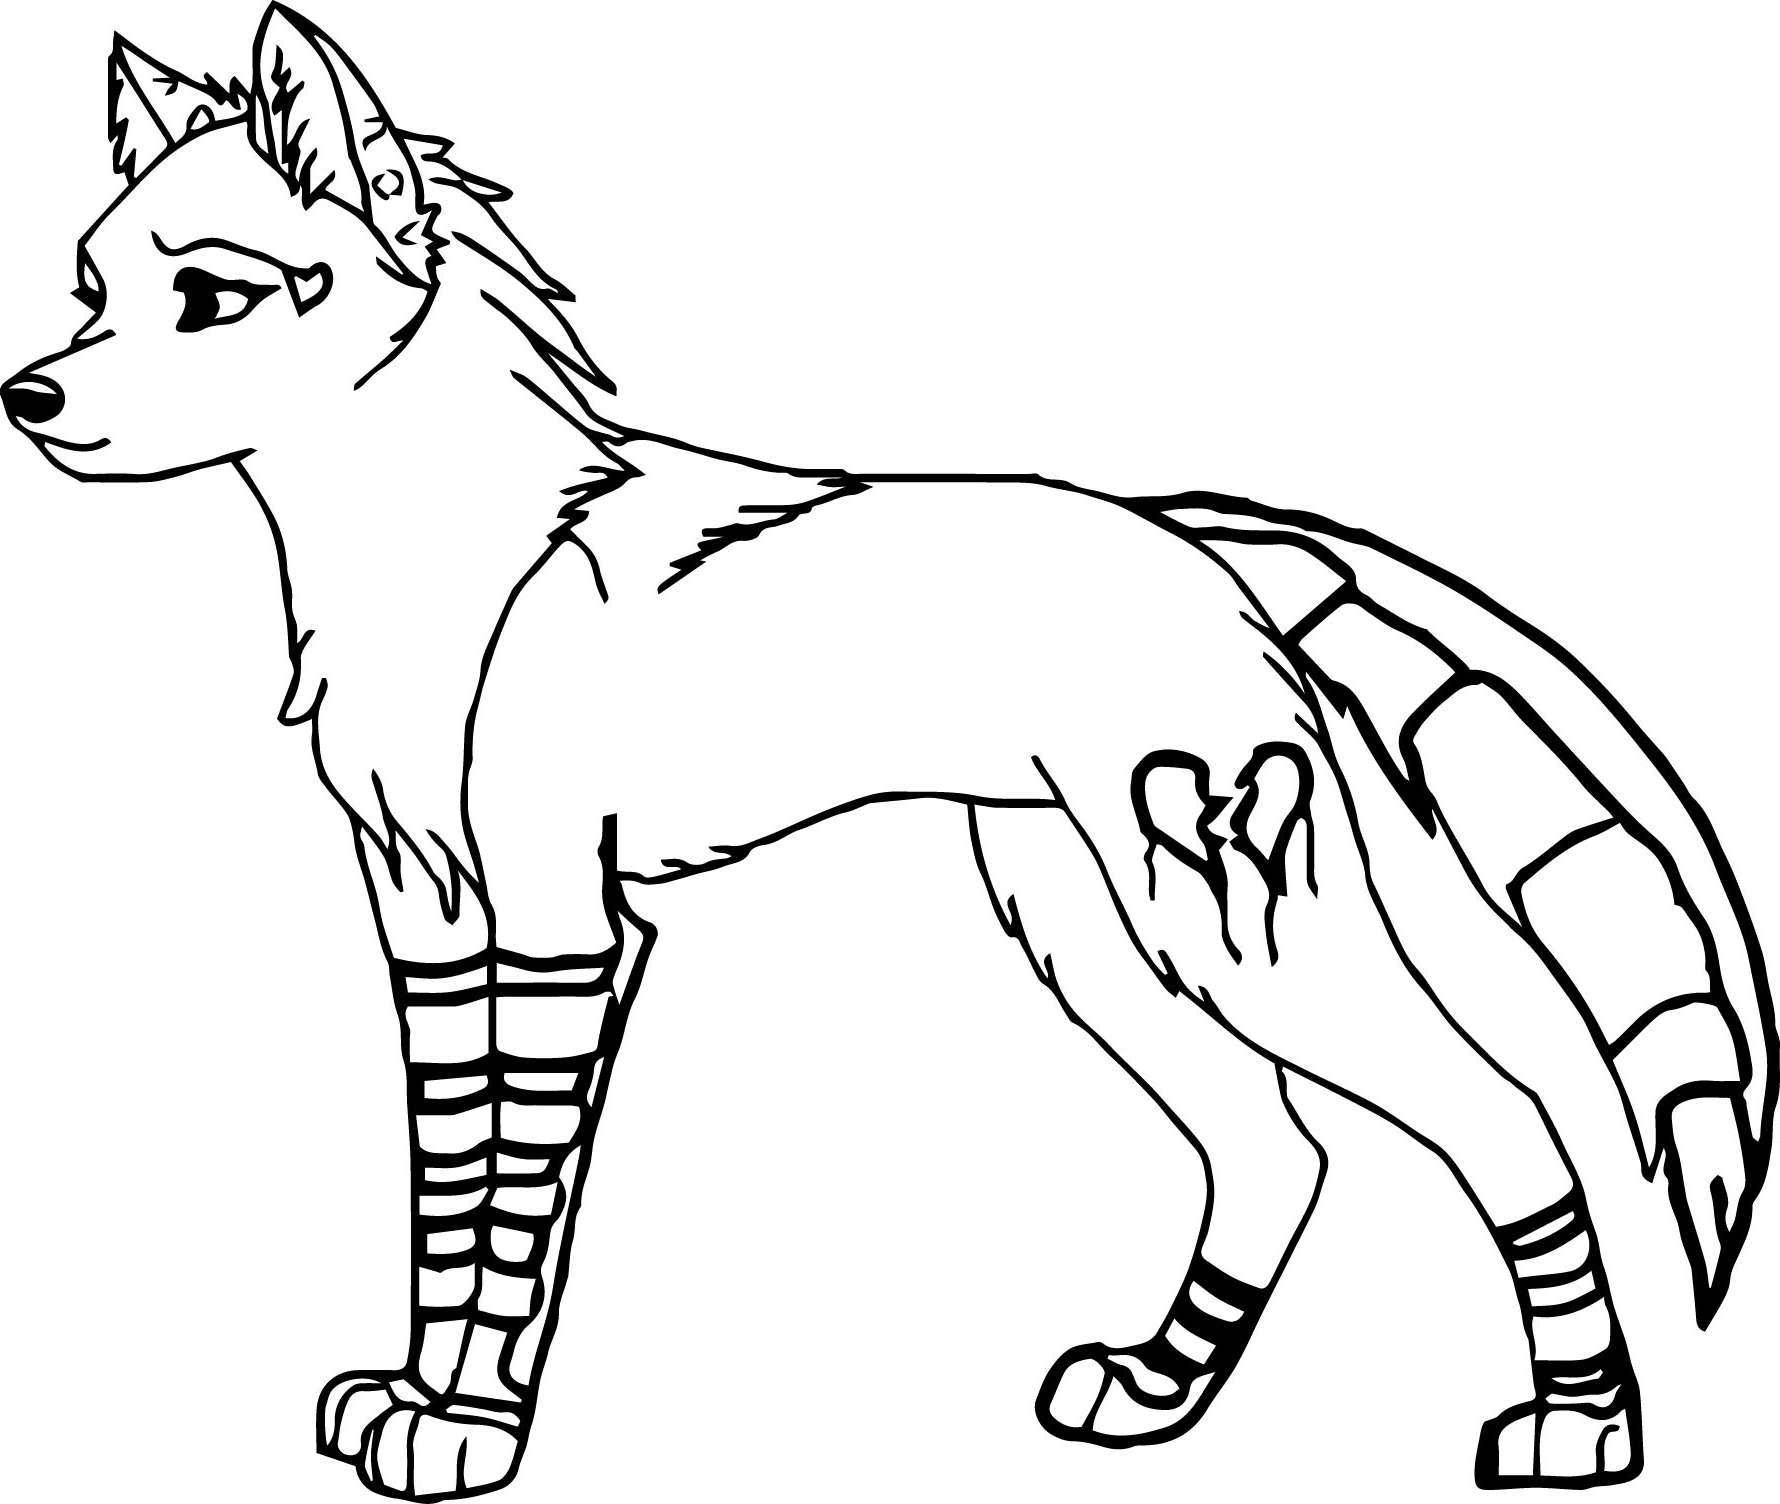 alpha and omega coloring pages to print - Master Coloring Pages